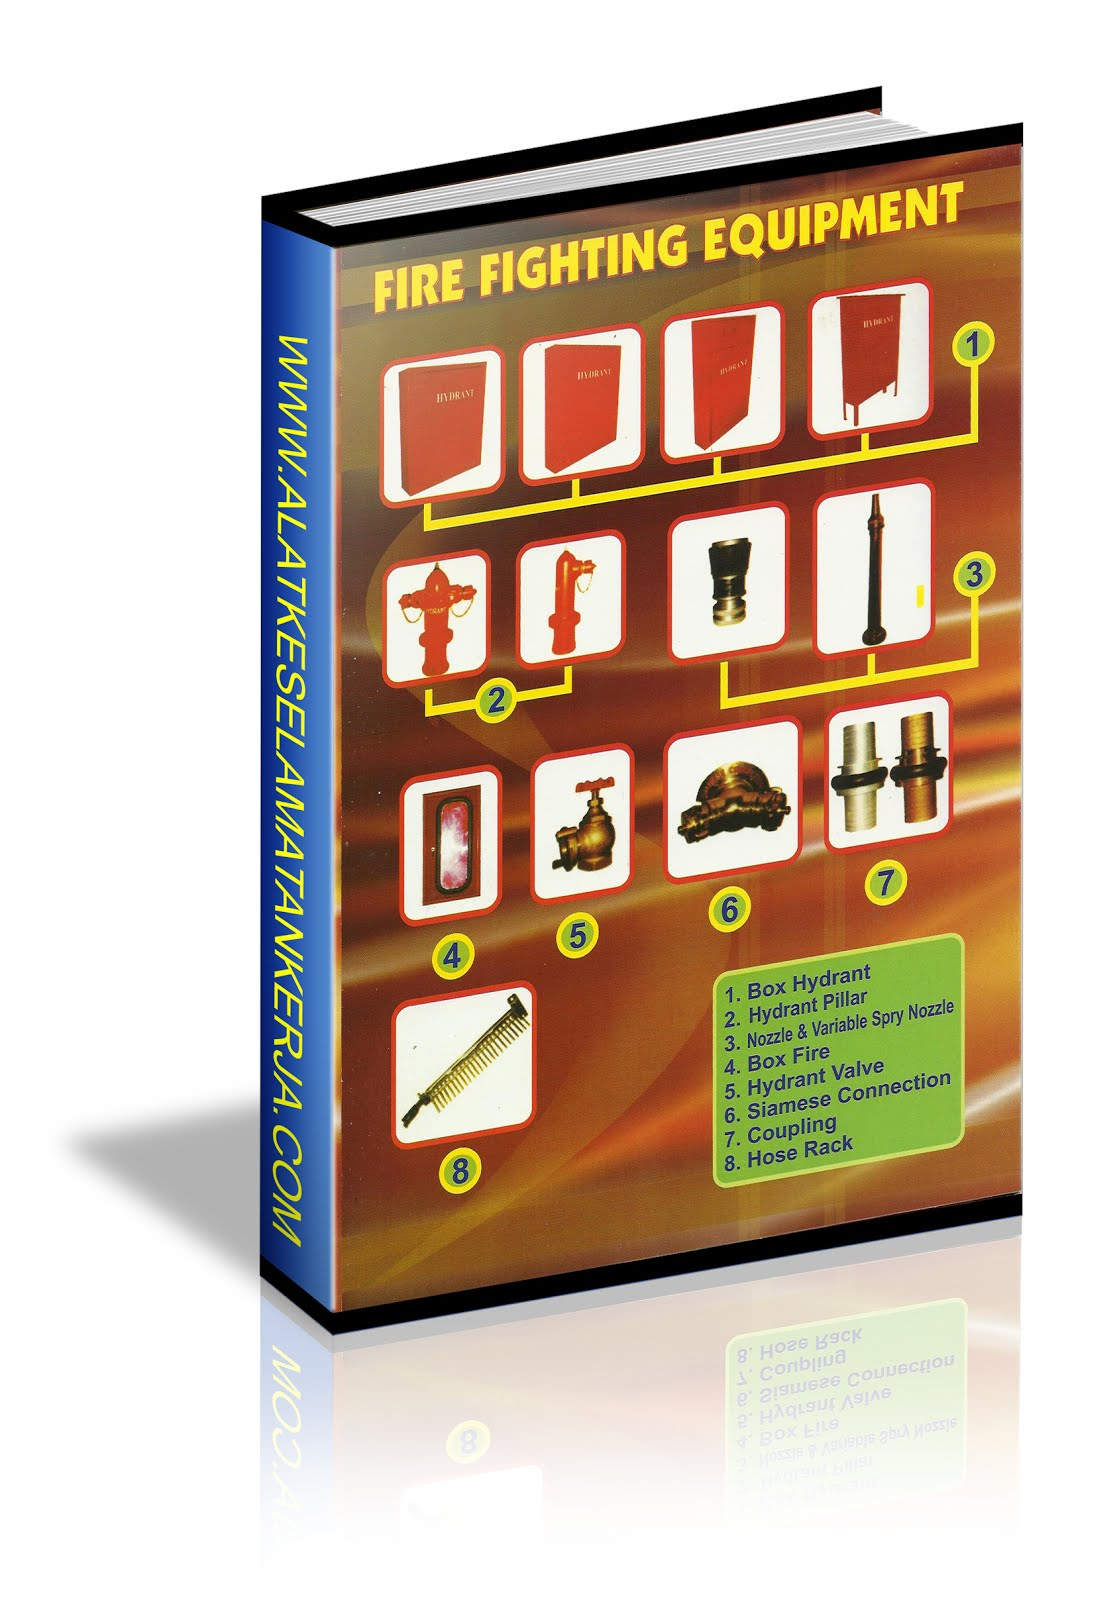 FIRE FIGHTING EQUIPMENT AND ACCECORIES PRODUCT